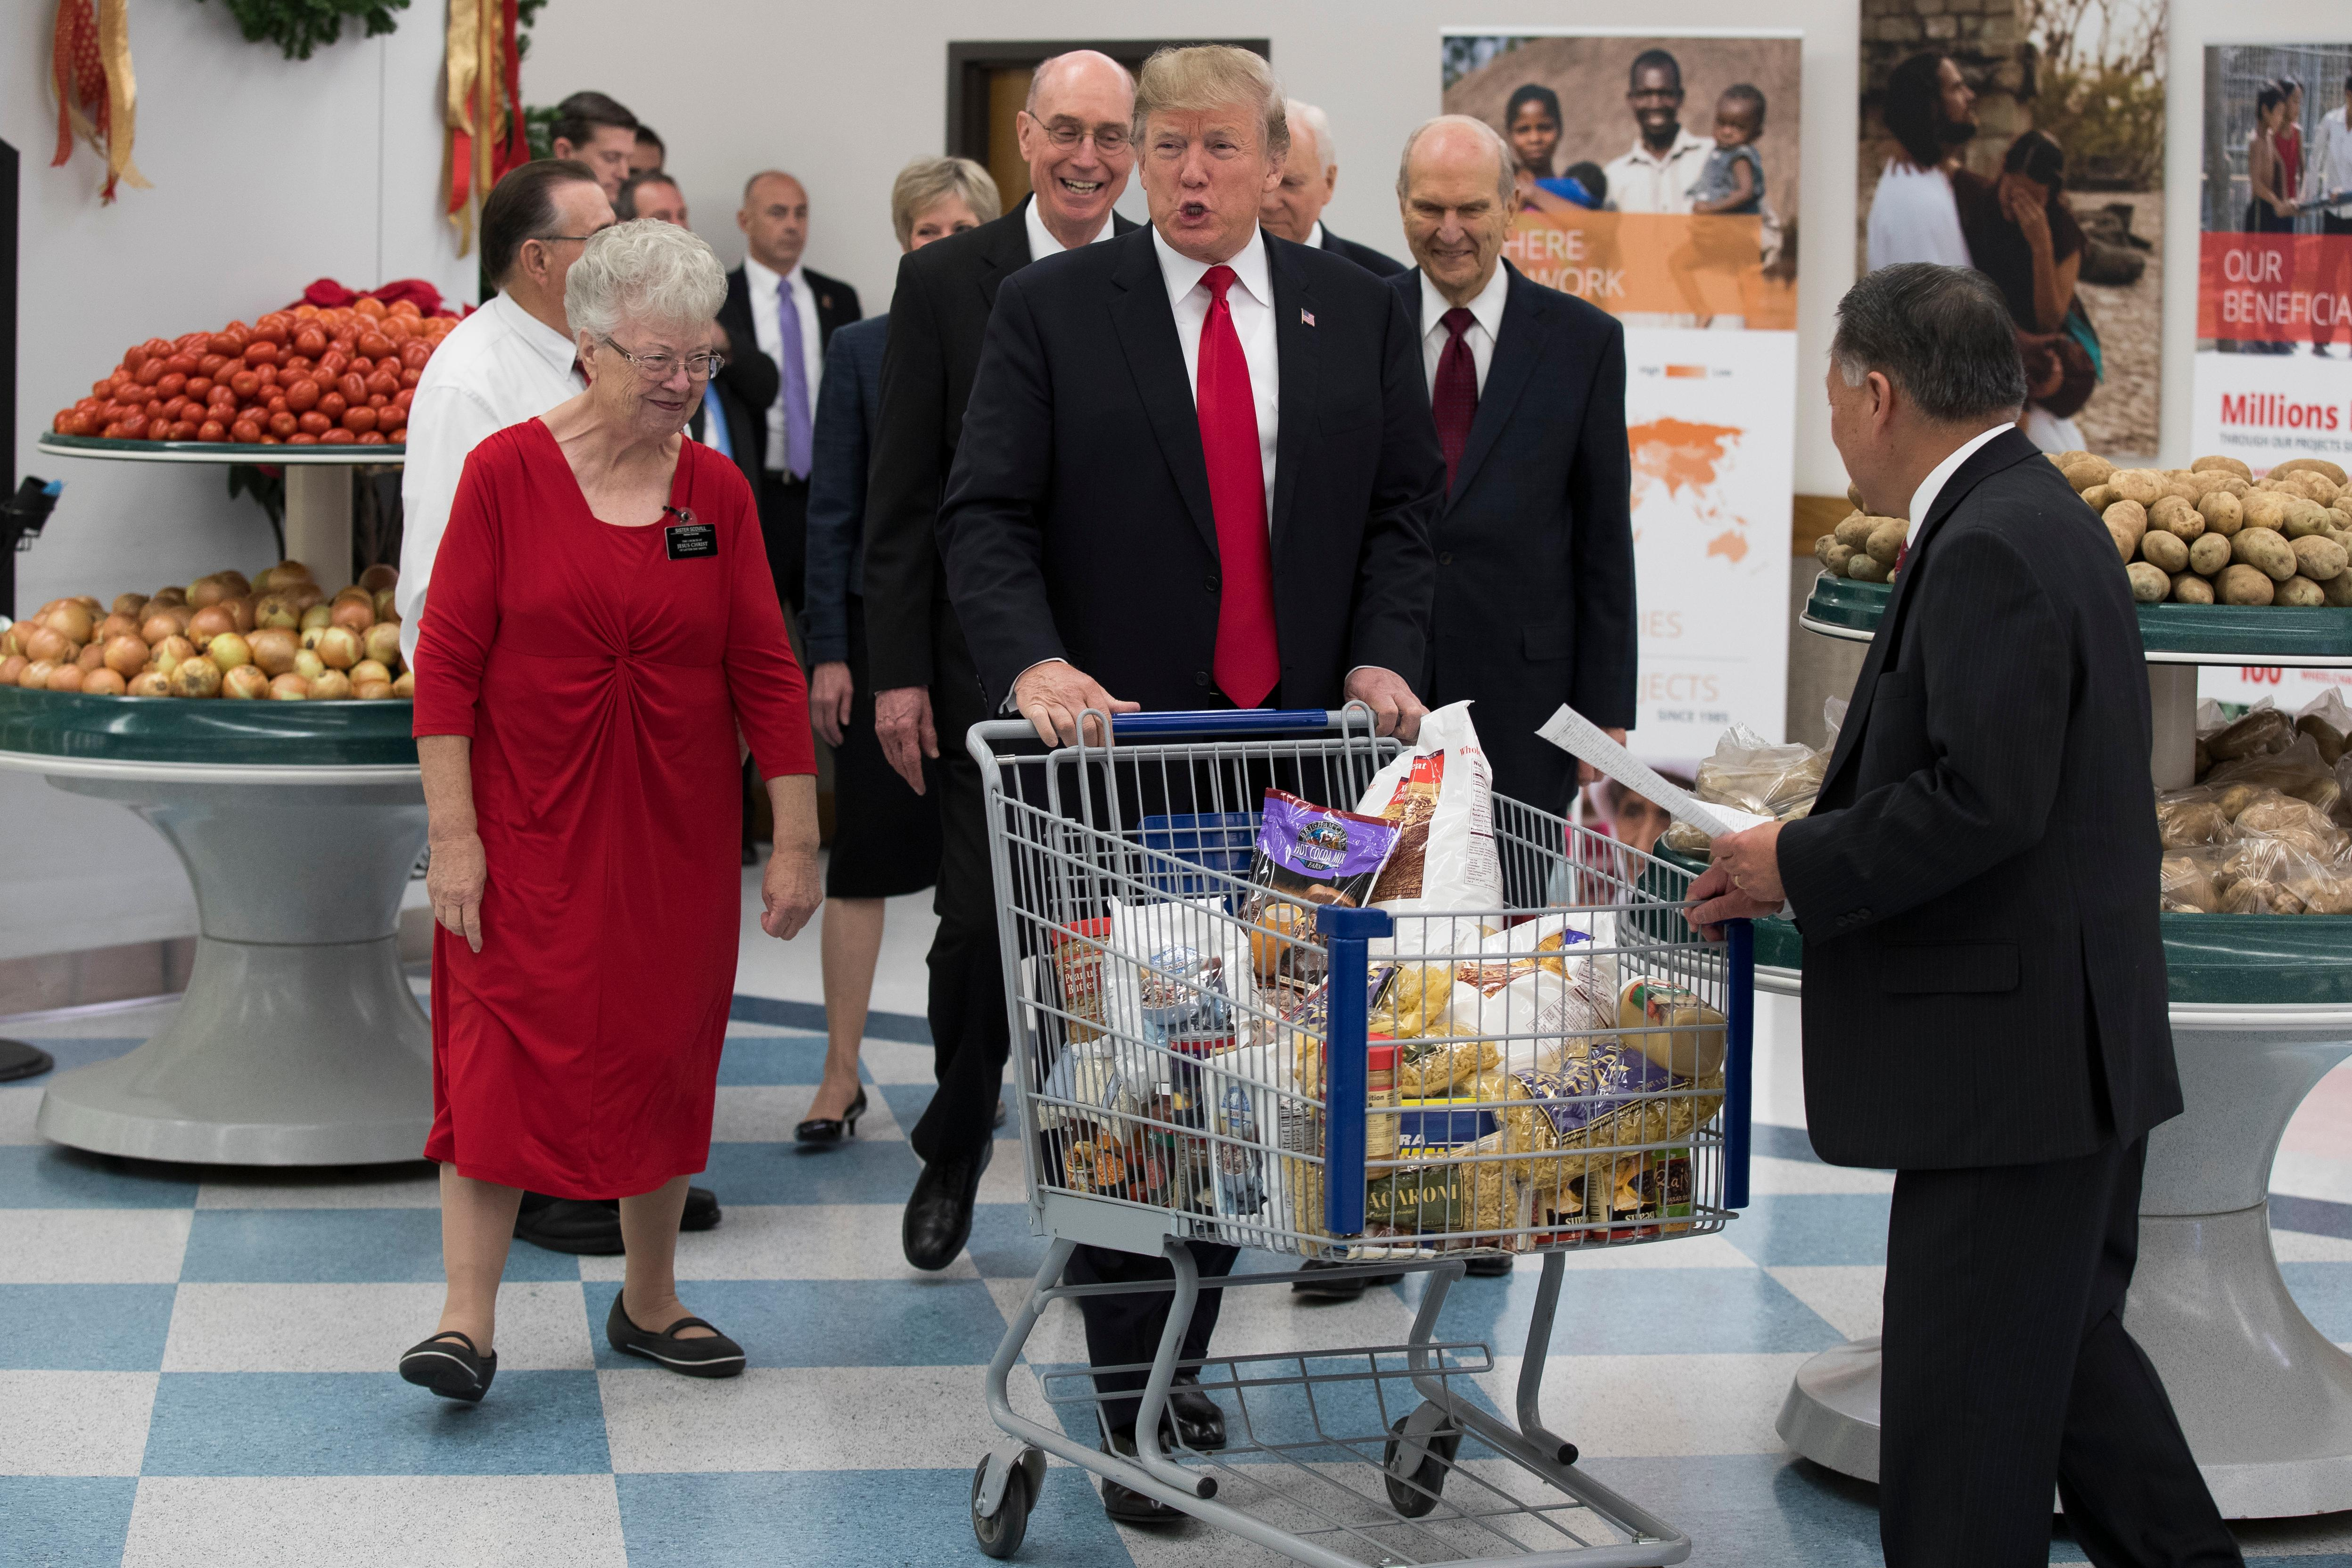 President Donald Trump pushes a cart during a tour of the Church of Jesus Christ of Latter-Day Saints Welfare Square food distribution center, Monday, Dec. 4, 2017, in Salt Lake City. (AP Photo/Evan Vucci)